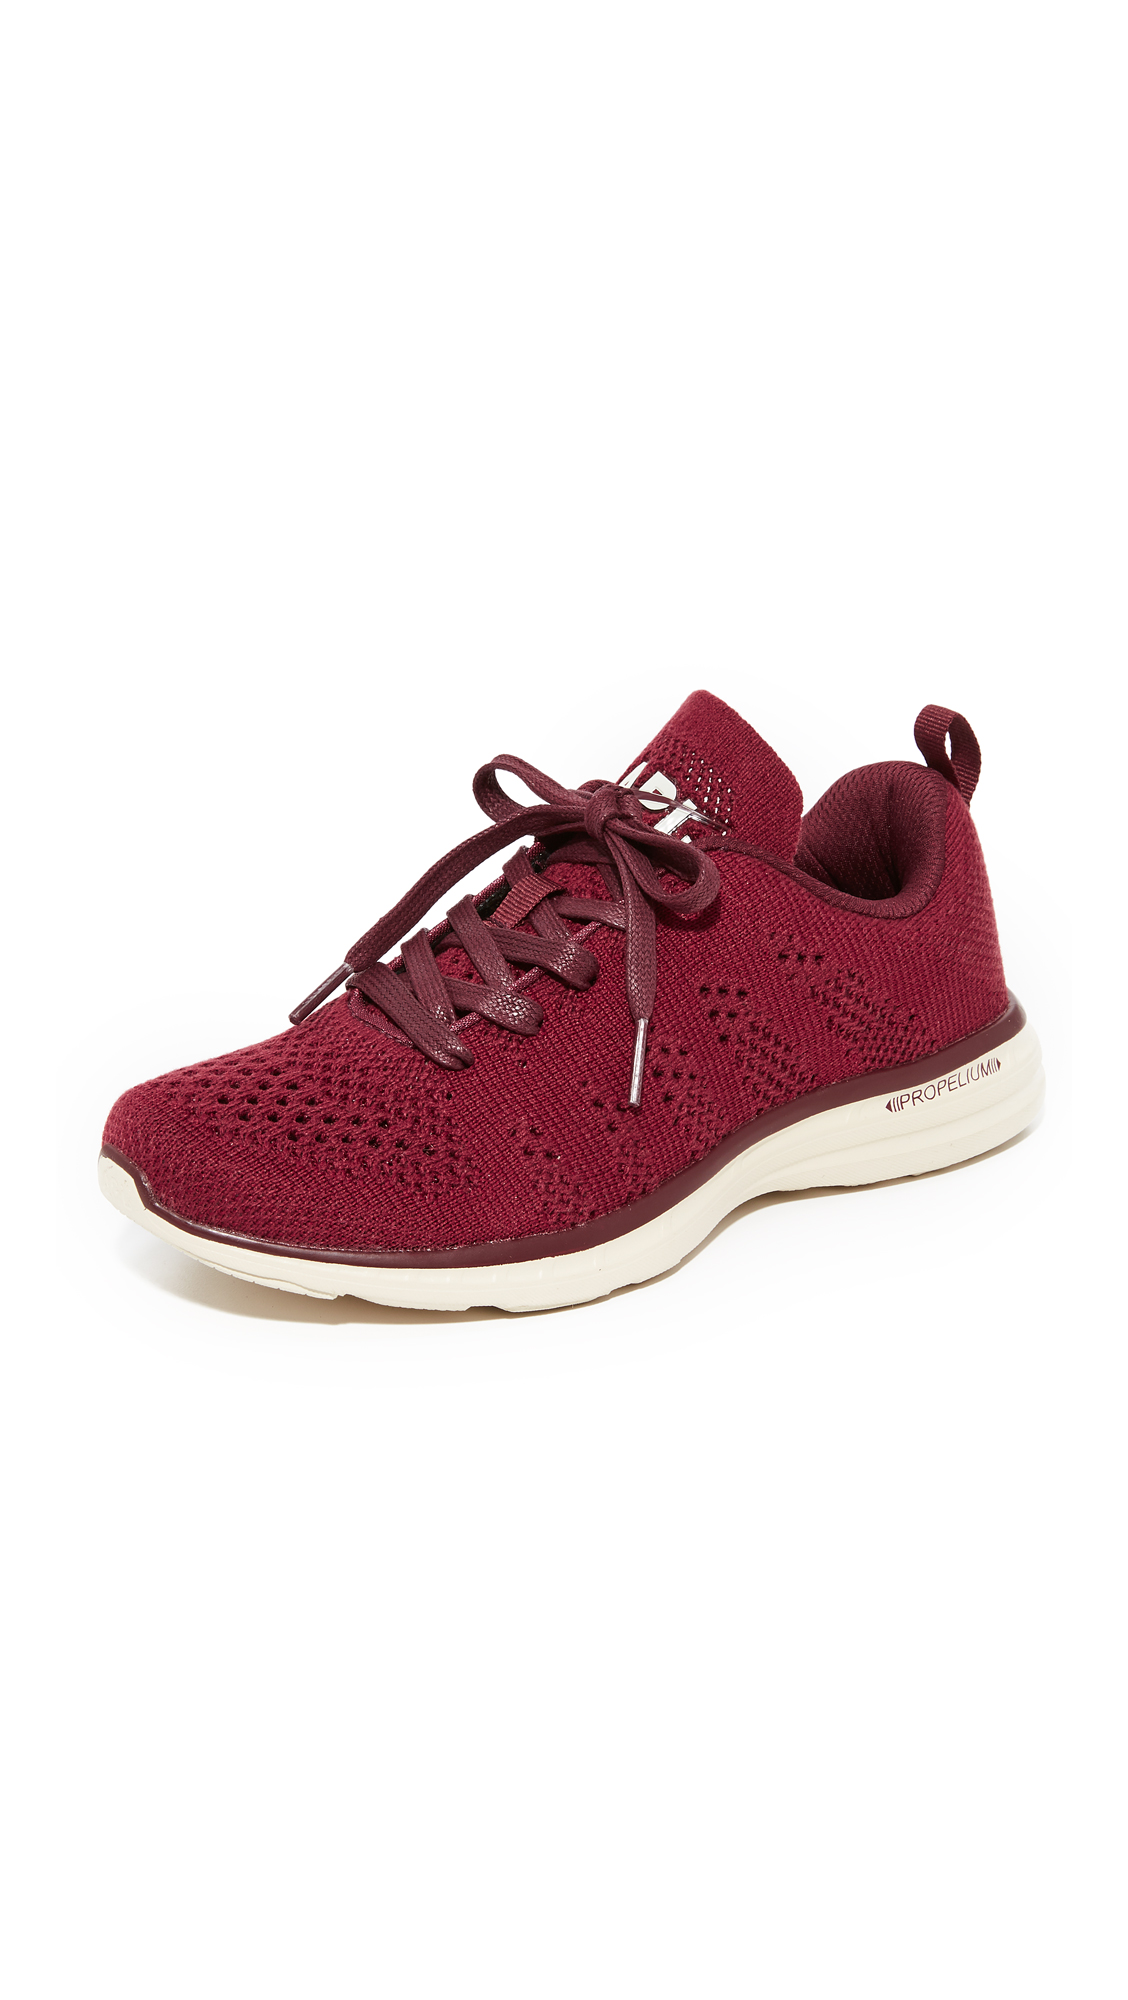 APL: Athletic Propulsion Labs Techloom Pro Cashmere Sneakers - Burgundy/Parchment